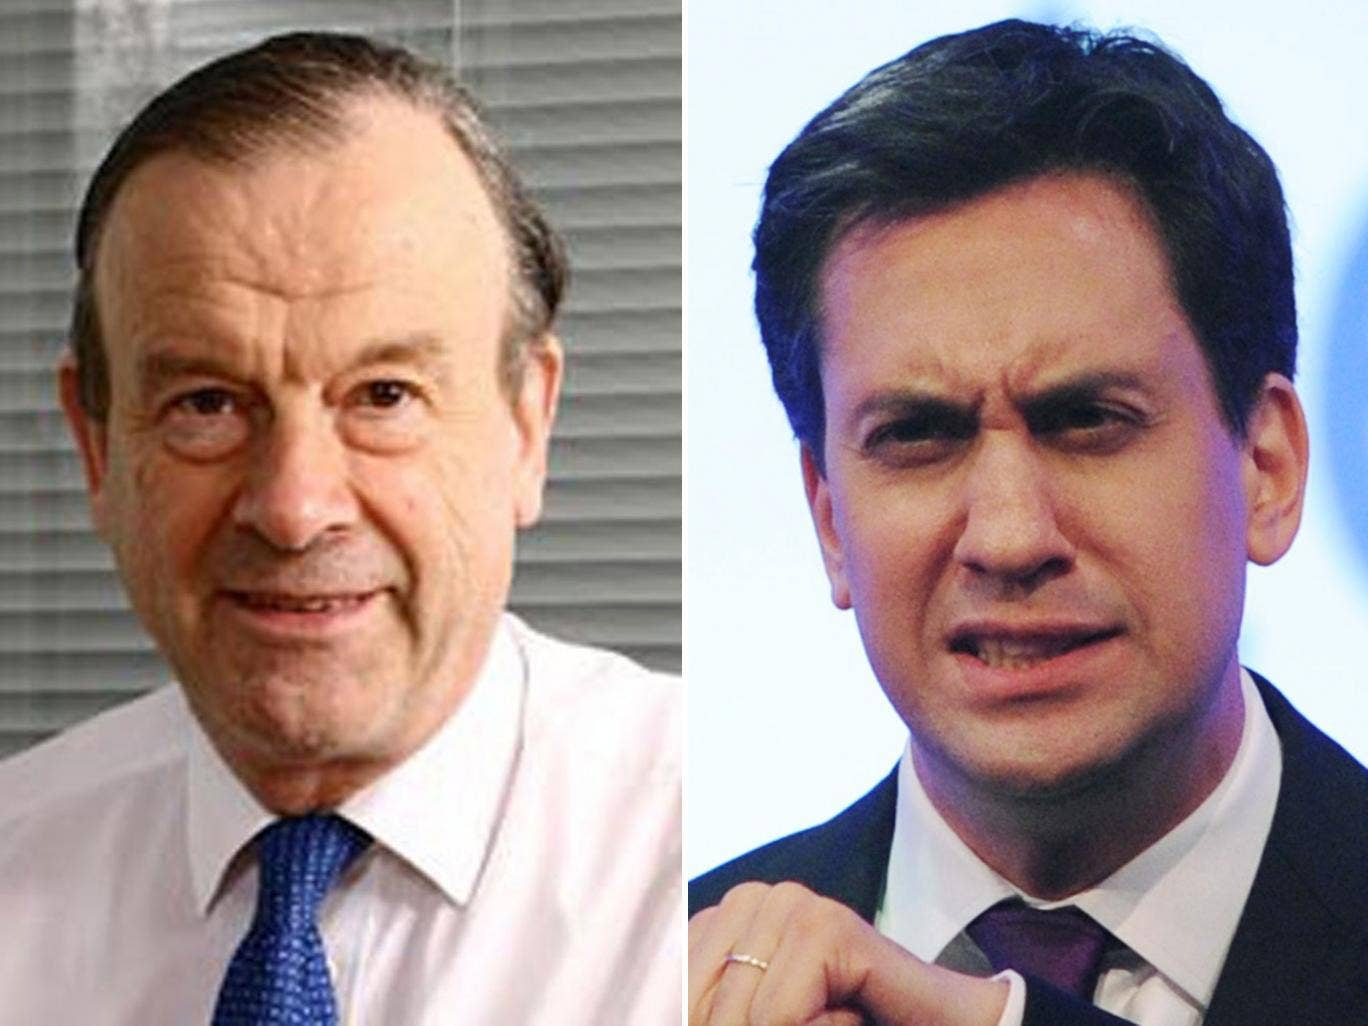 John Mills, left, said Ed Miliband had no clear idea on how to get the economy growing